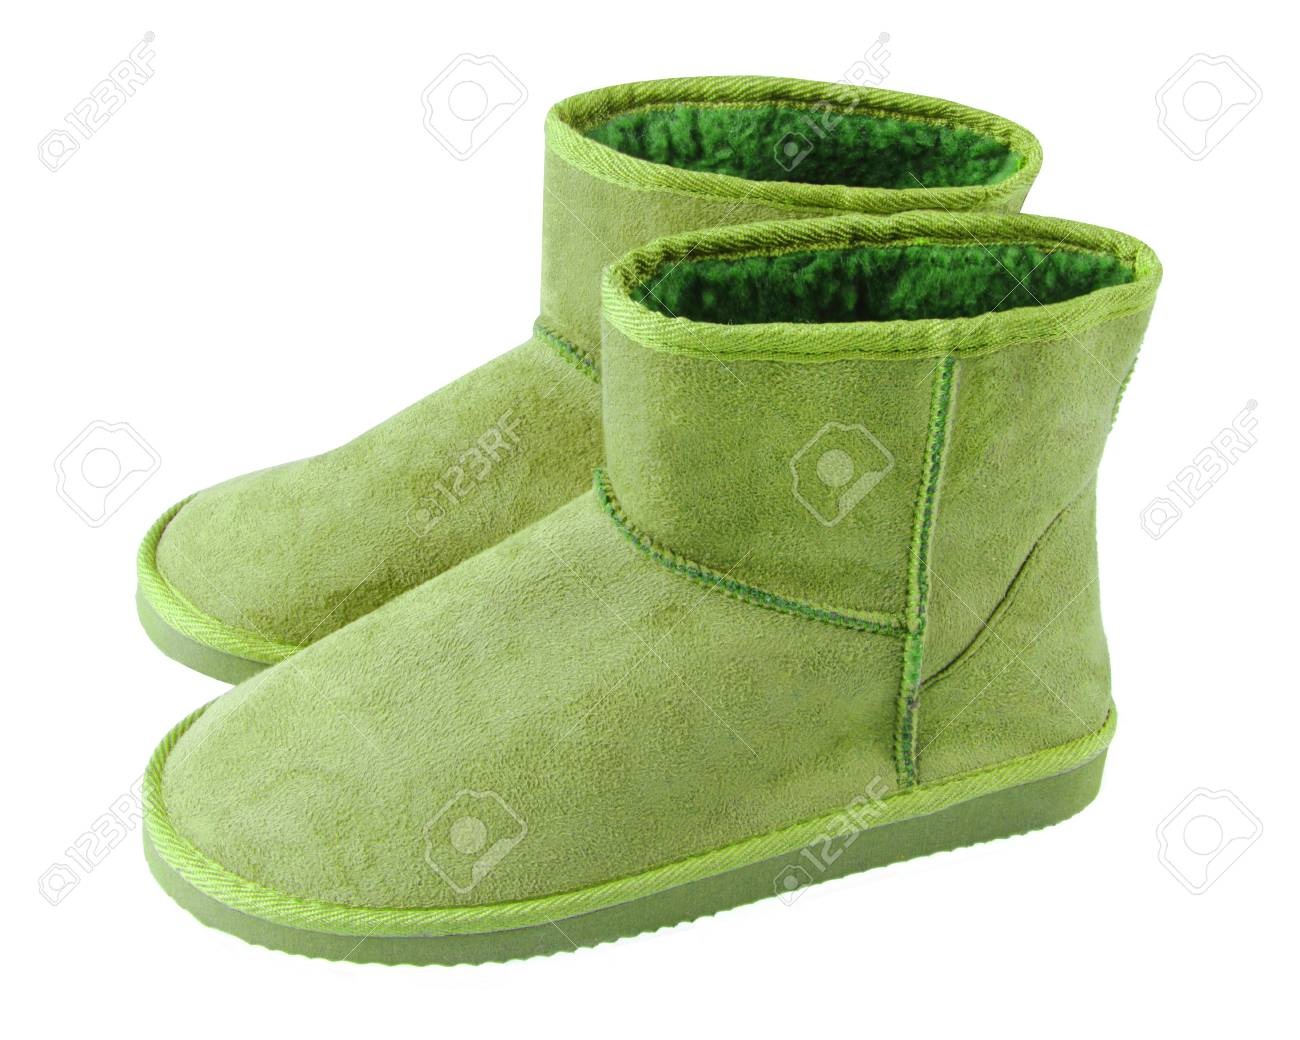 3f35b4efe57 Chartreuse light green pair of short winter ugg boots isolated..